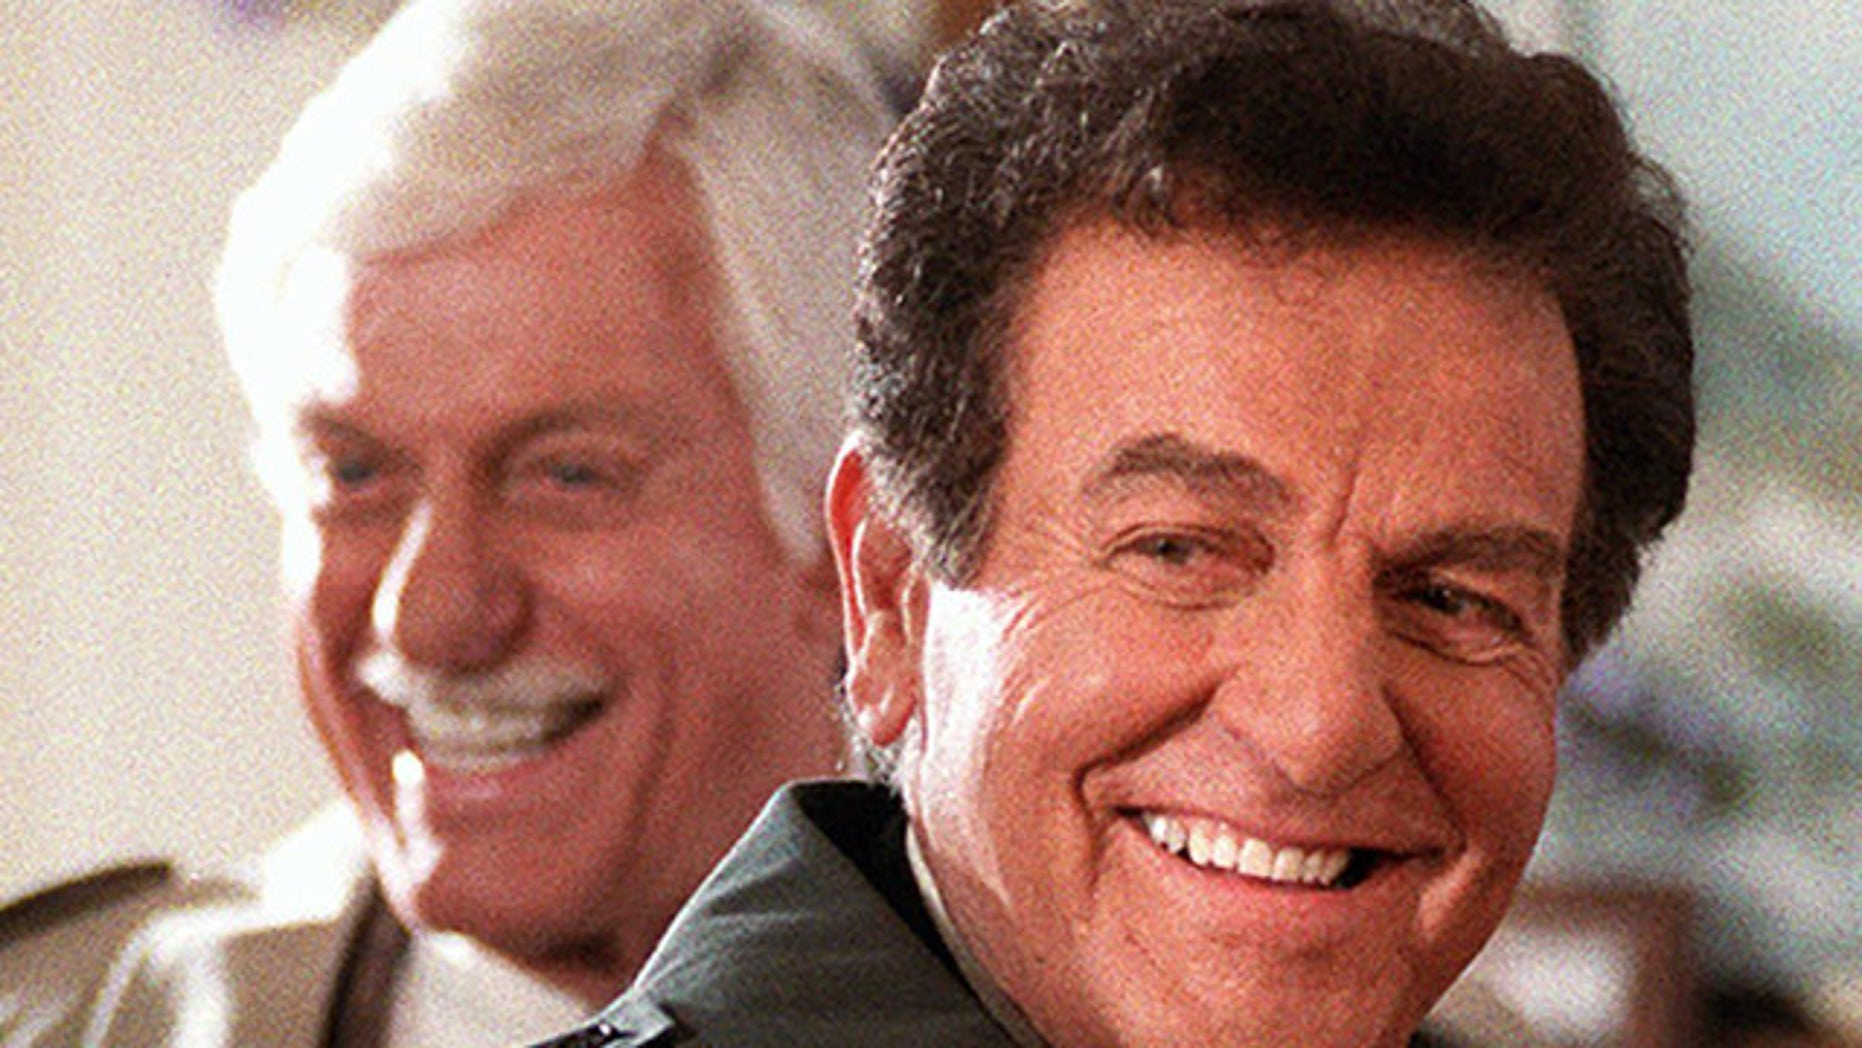 """Jan. 15, 1997: Actor Mike Connors, right, appears with actor Dick Van Dyke during an episode of the television show """"Diagnosis Murder,"""""""